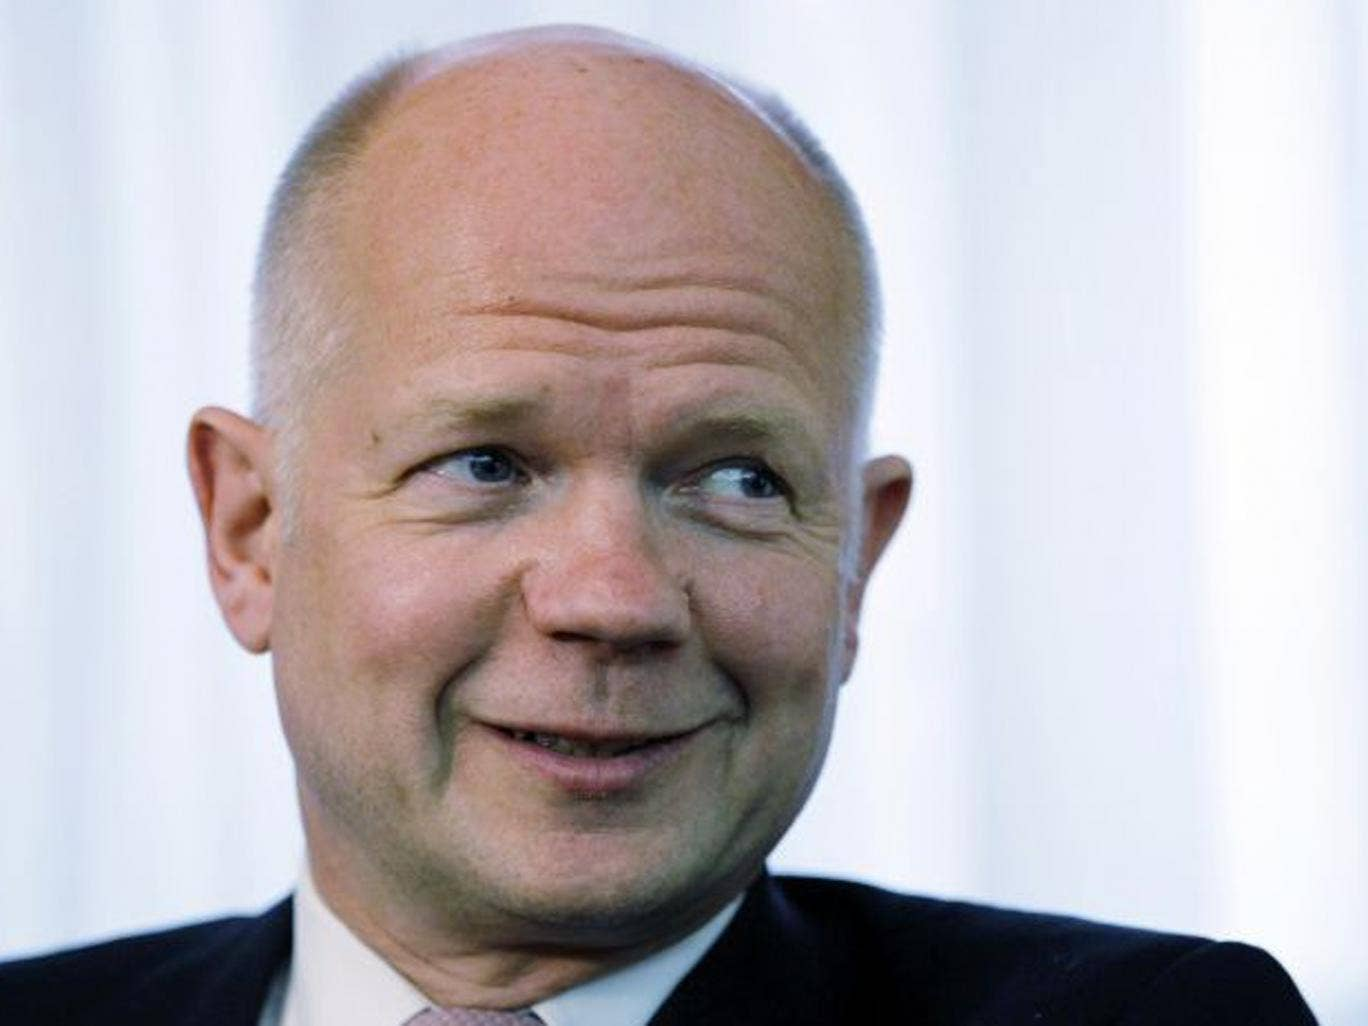 William Hague argued that the move would boost the democratic accountability of the national parliaments in the EU's 27 member states